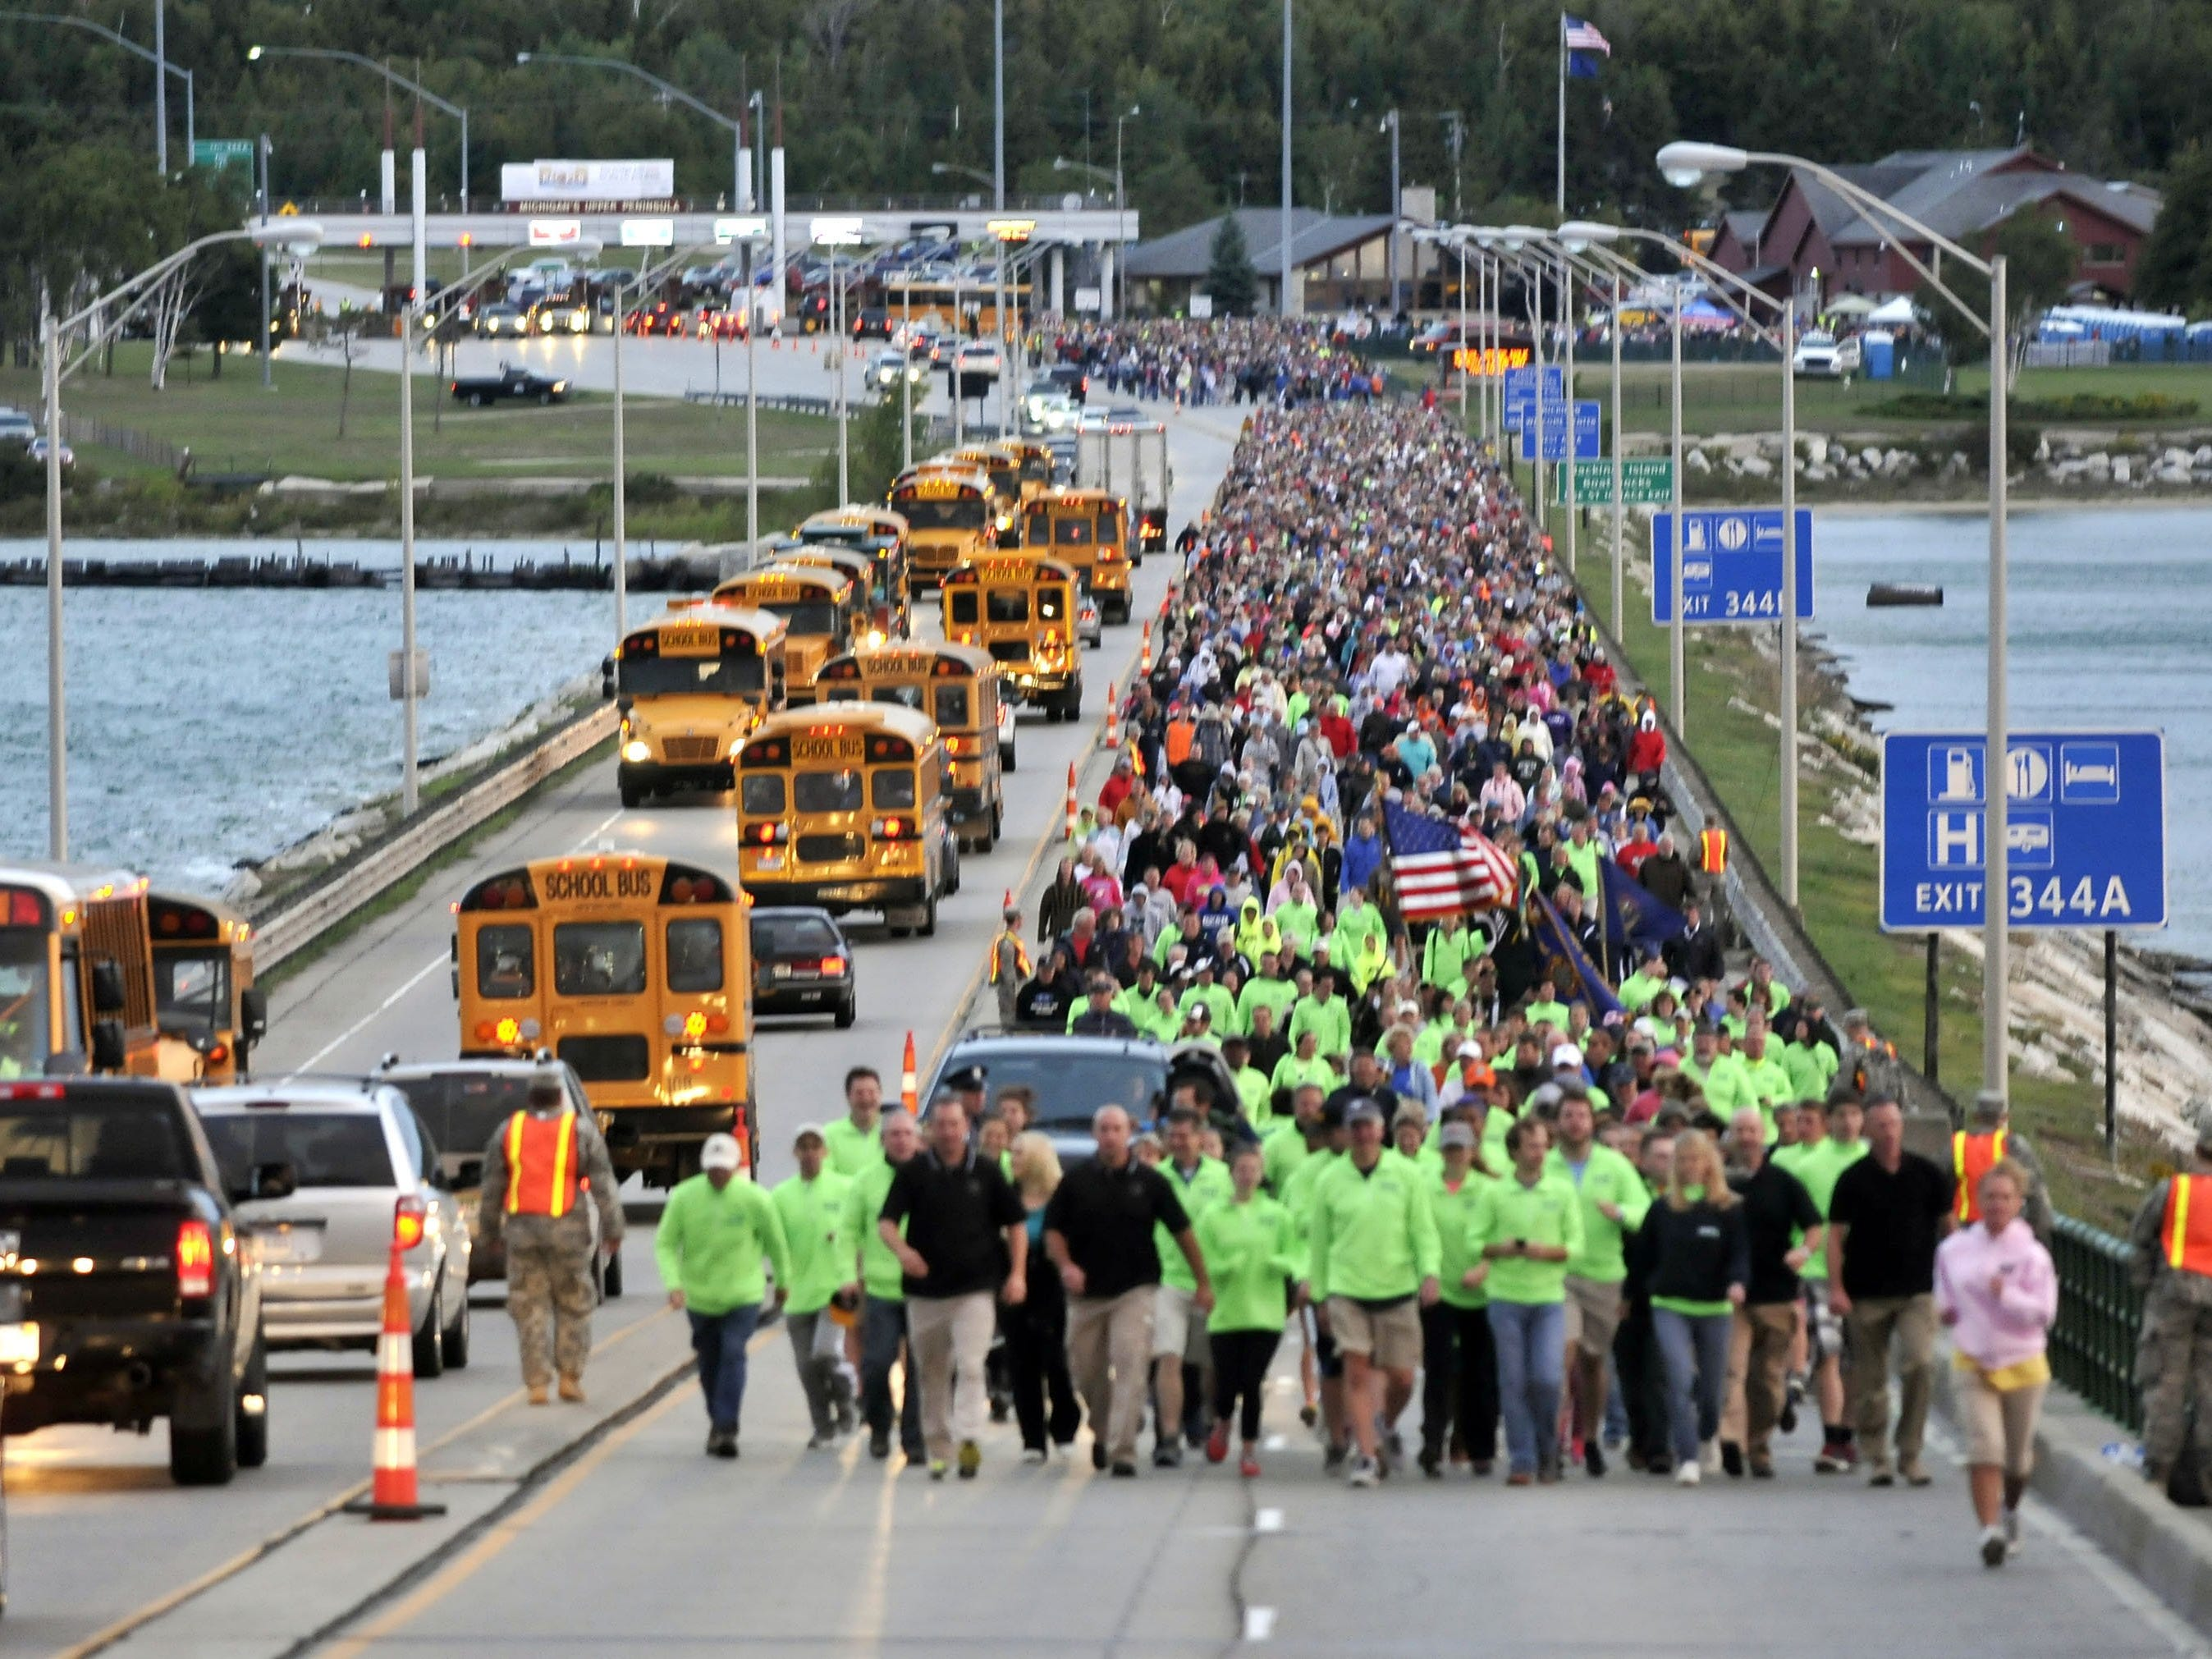 Michigan Gov. Rick Snyder walks with friends and visitors during the beginning of the Labor Day Bridge Walk across the five-mile-long Mackinac Bridge, Monday, Sept. 2, 2013 during the annual event. Labor Day is the only day pedestrians are allowed on the span, which connects Michigan's upper and lower peninsulas.